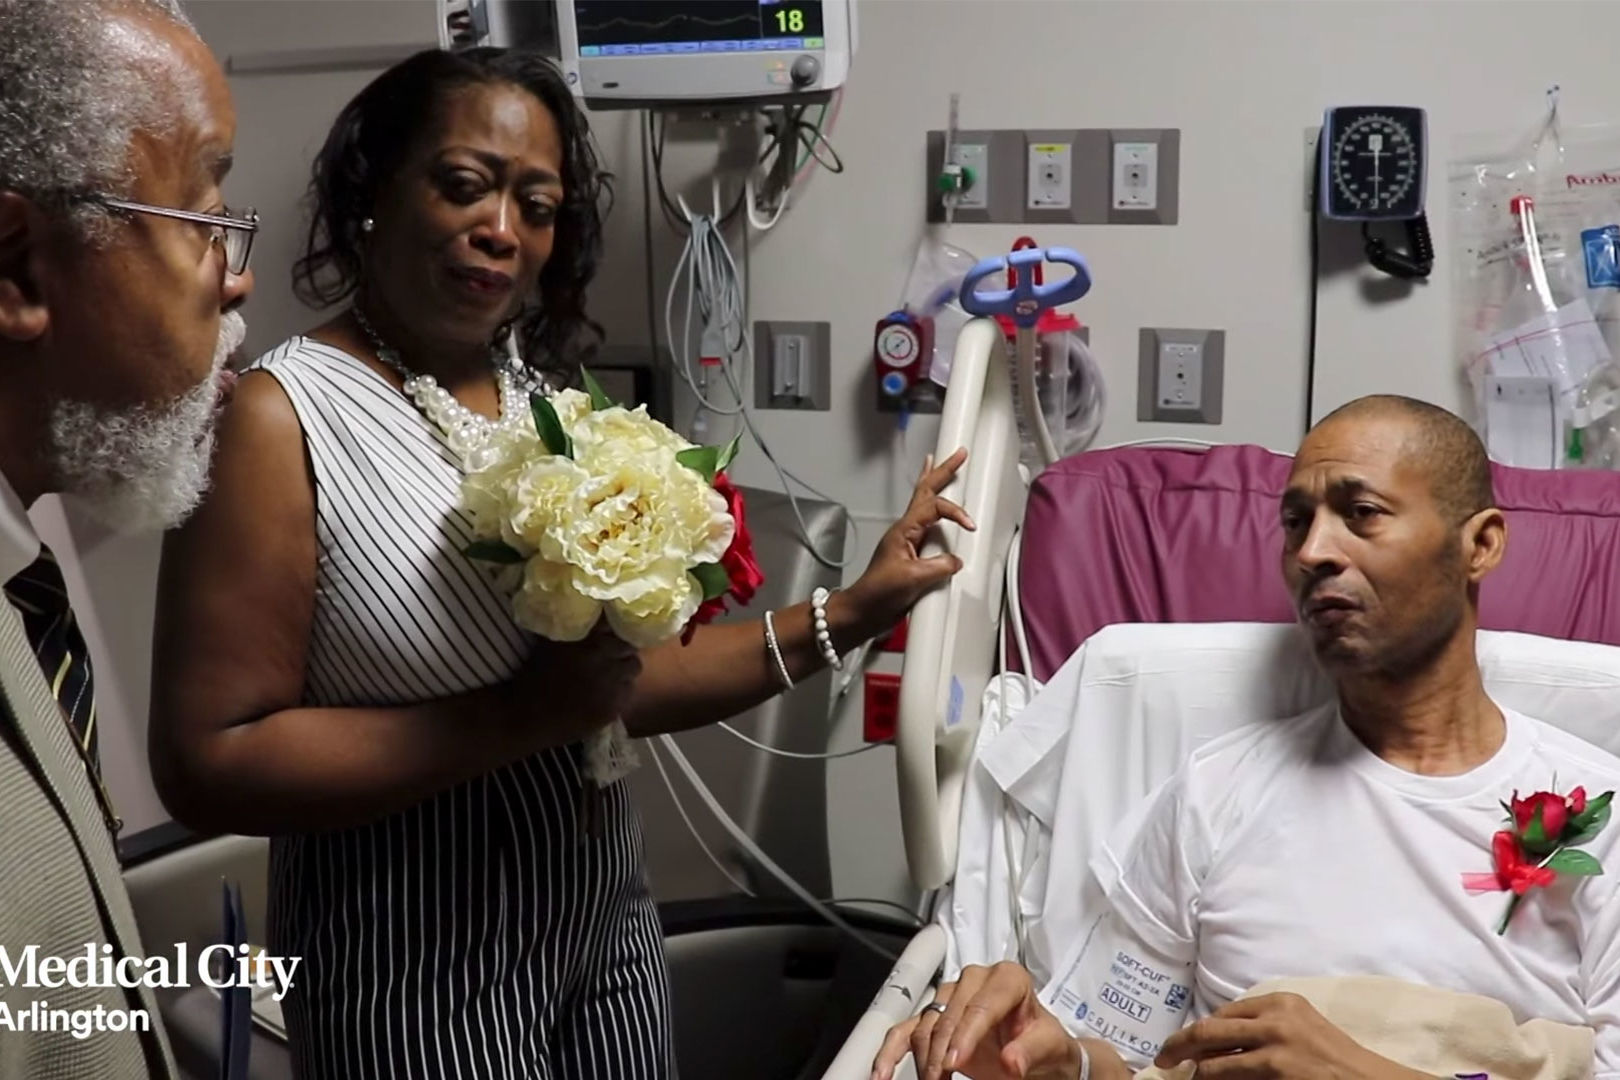 Hospital Plans Wedding for Couple of 23 Years After Cancer Prevents Long-Awaited Vows